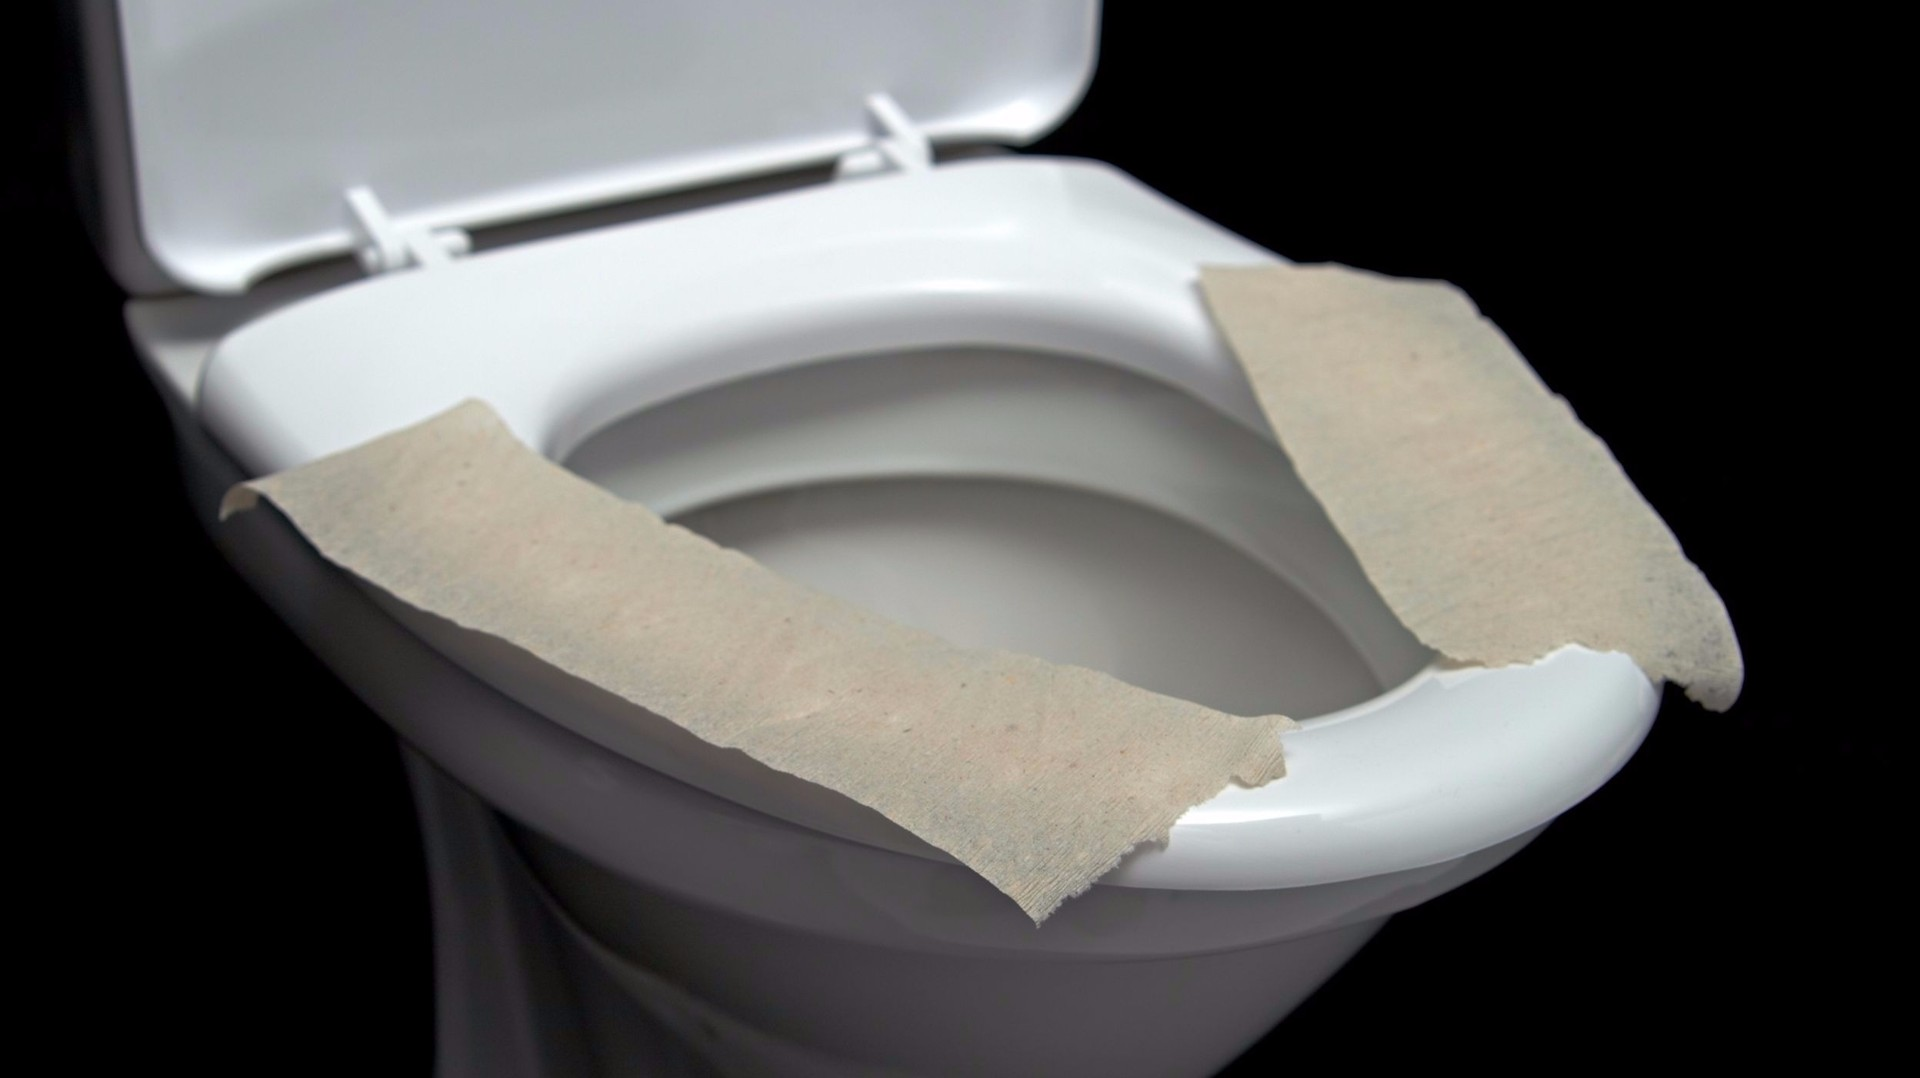 Putting Paper On Toilet Seat May Be Worse